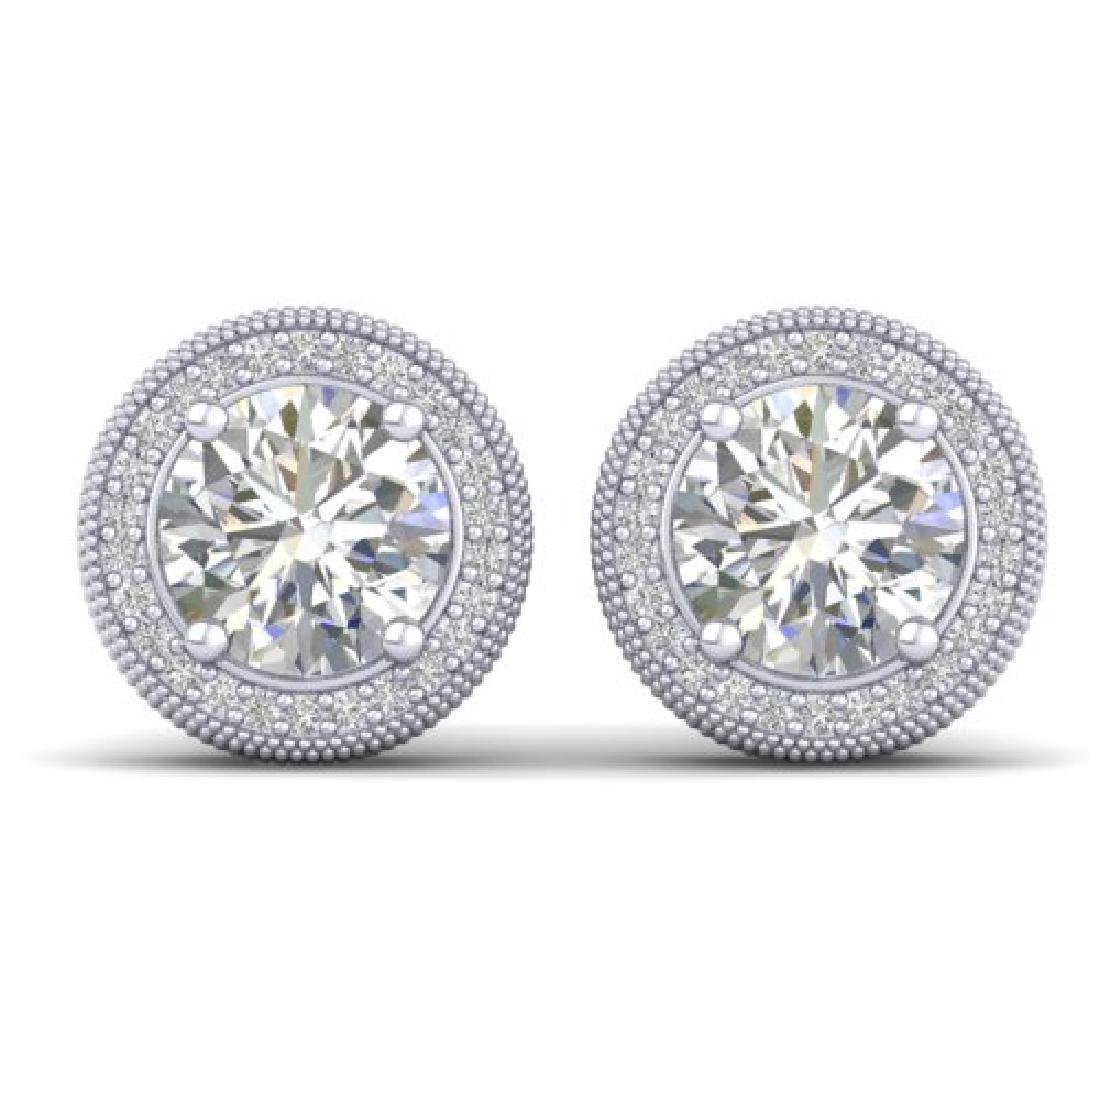 4 CTW Certified VS/SI Diamond Art Deco Stud Earrings